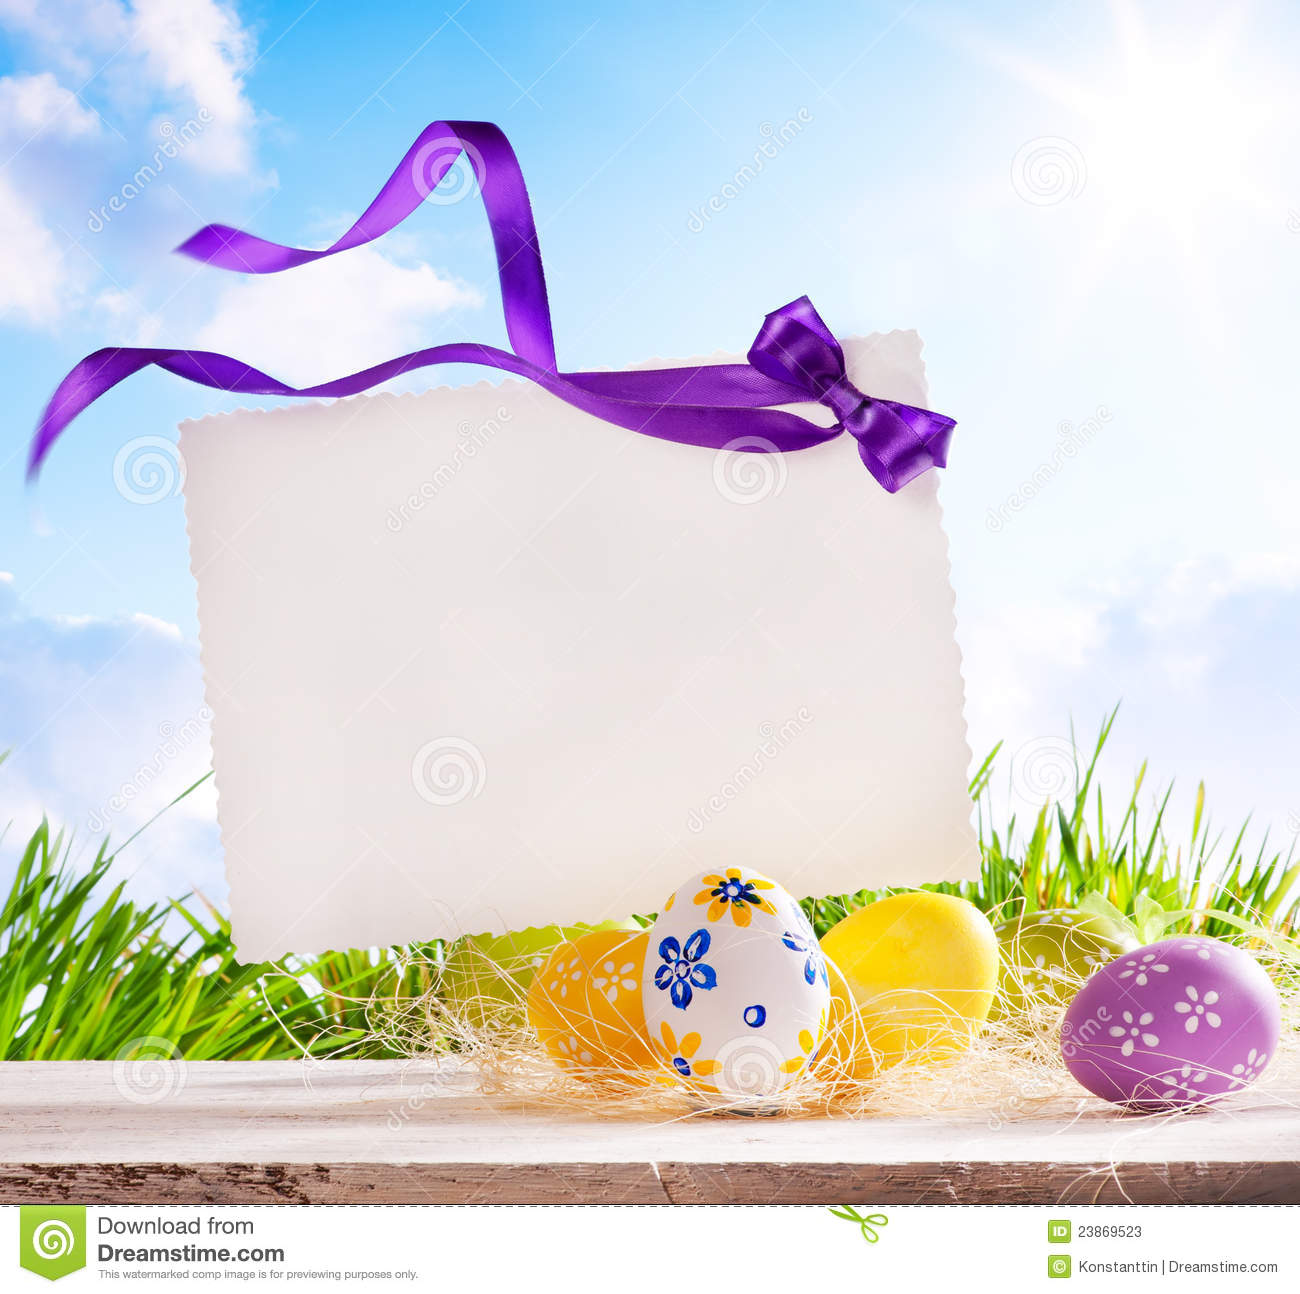 Art Easter Greeting Card With Easter Eggs Photo Image – Easter Greeting Cards